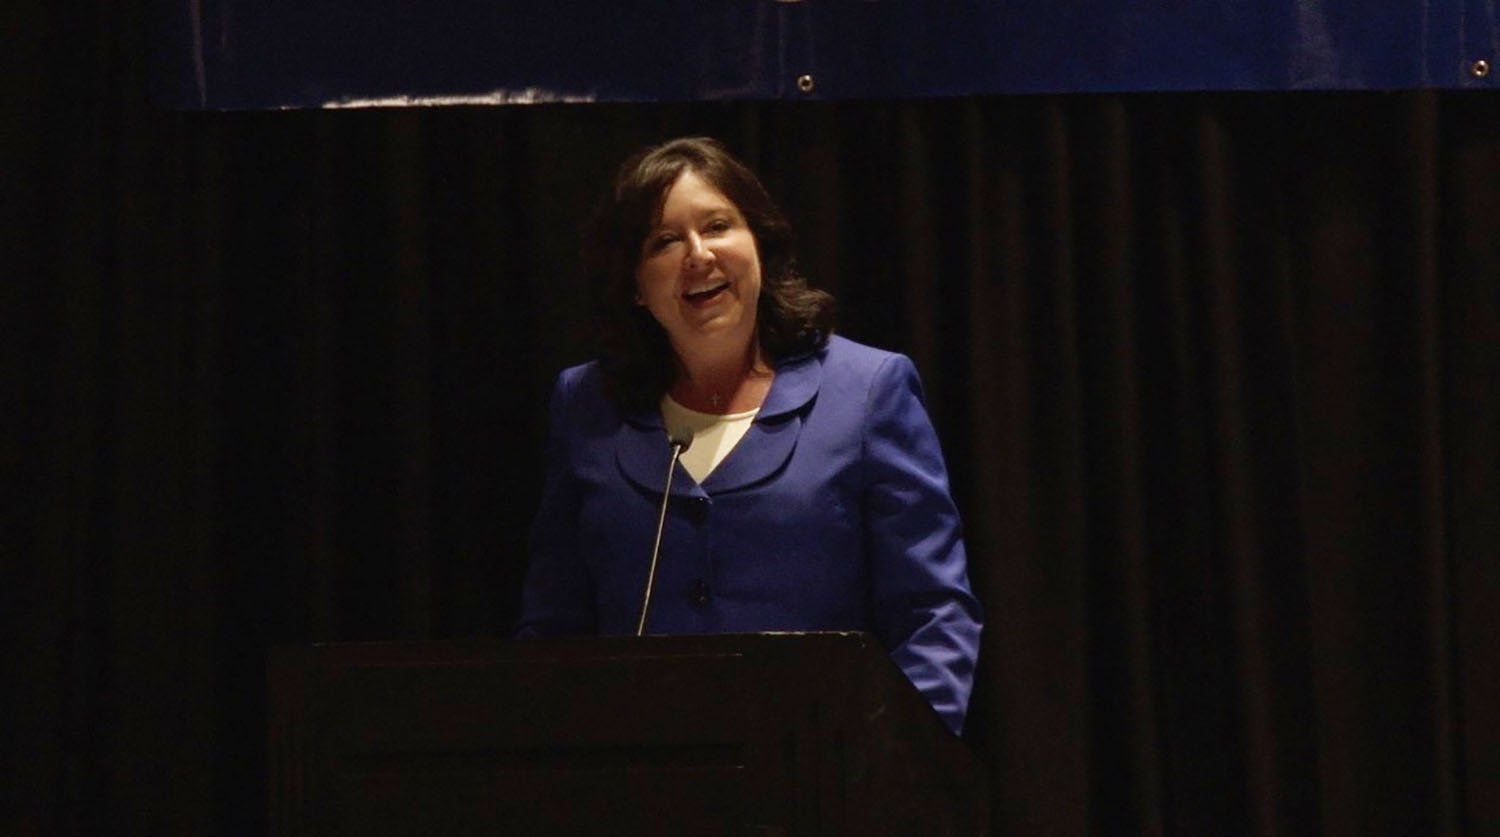 Arizona Secretary of State Michele Reagan, speaking to the National Association of Secretaries of State, said that communication with voters is one of the most important tools in a crisis. (Source: Anthony Marroquin/Cronkite News)